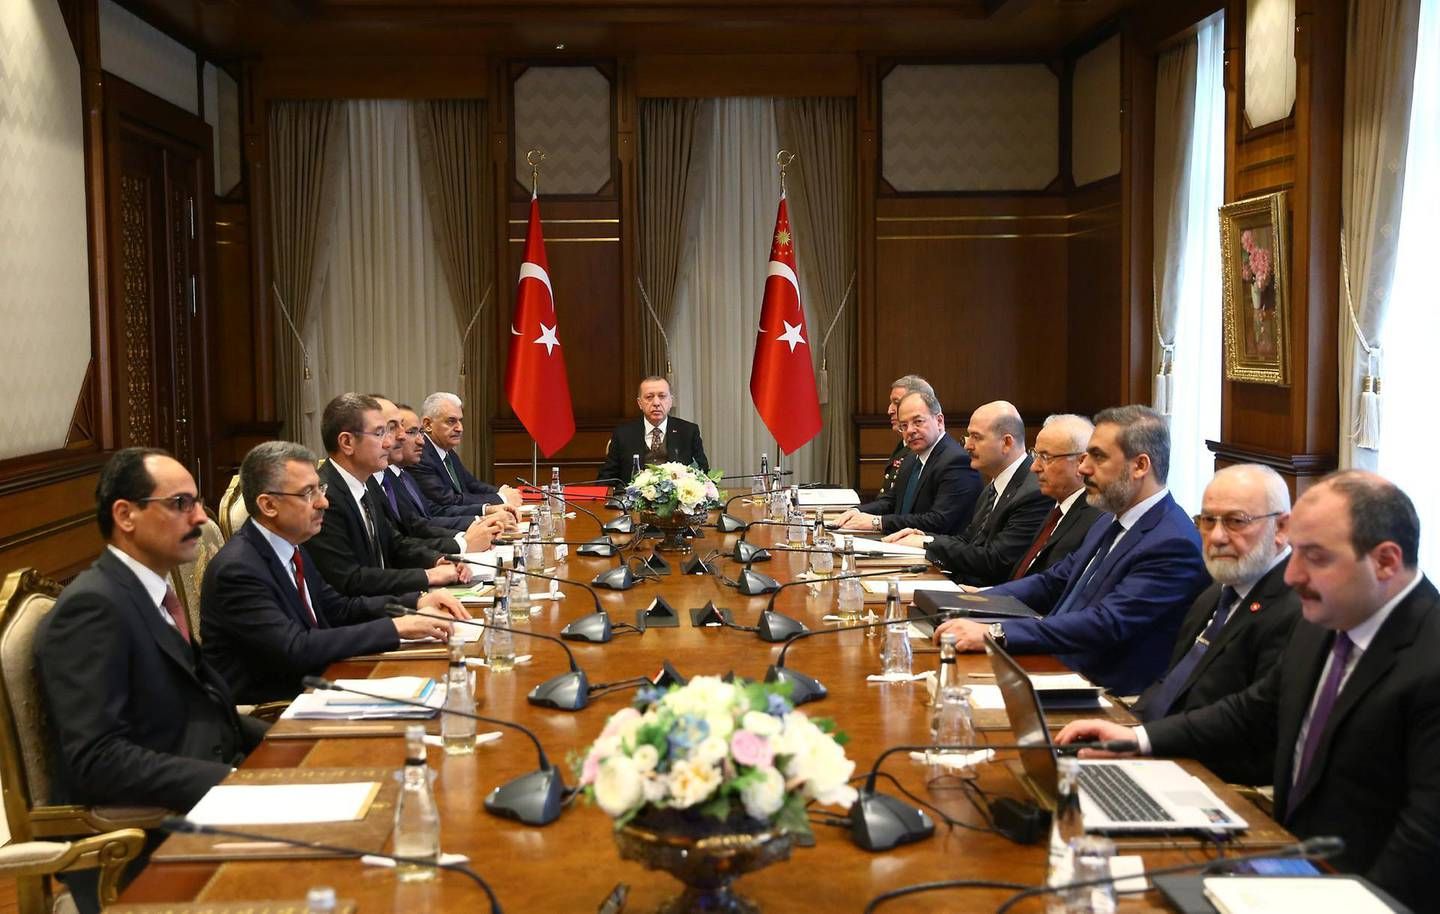 Turkish President Tayyip Erdogan chairs a security meeting in Ankara, Turkey January 23, 2018. Kayhan Ozer/Presidential Palace/Handout via REUTERS ATTENTION EDITORS - THIS PICTURE WAS PROVIDED BY A THIRD PARTY. NO RESALES. NO ARCHIVE.